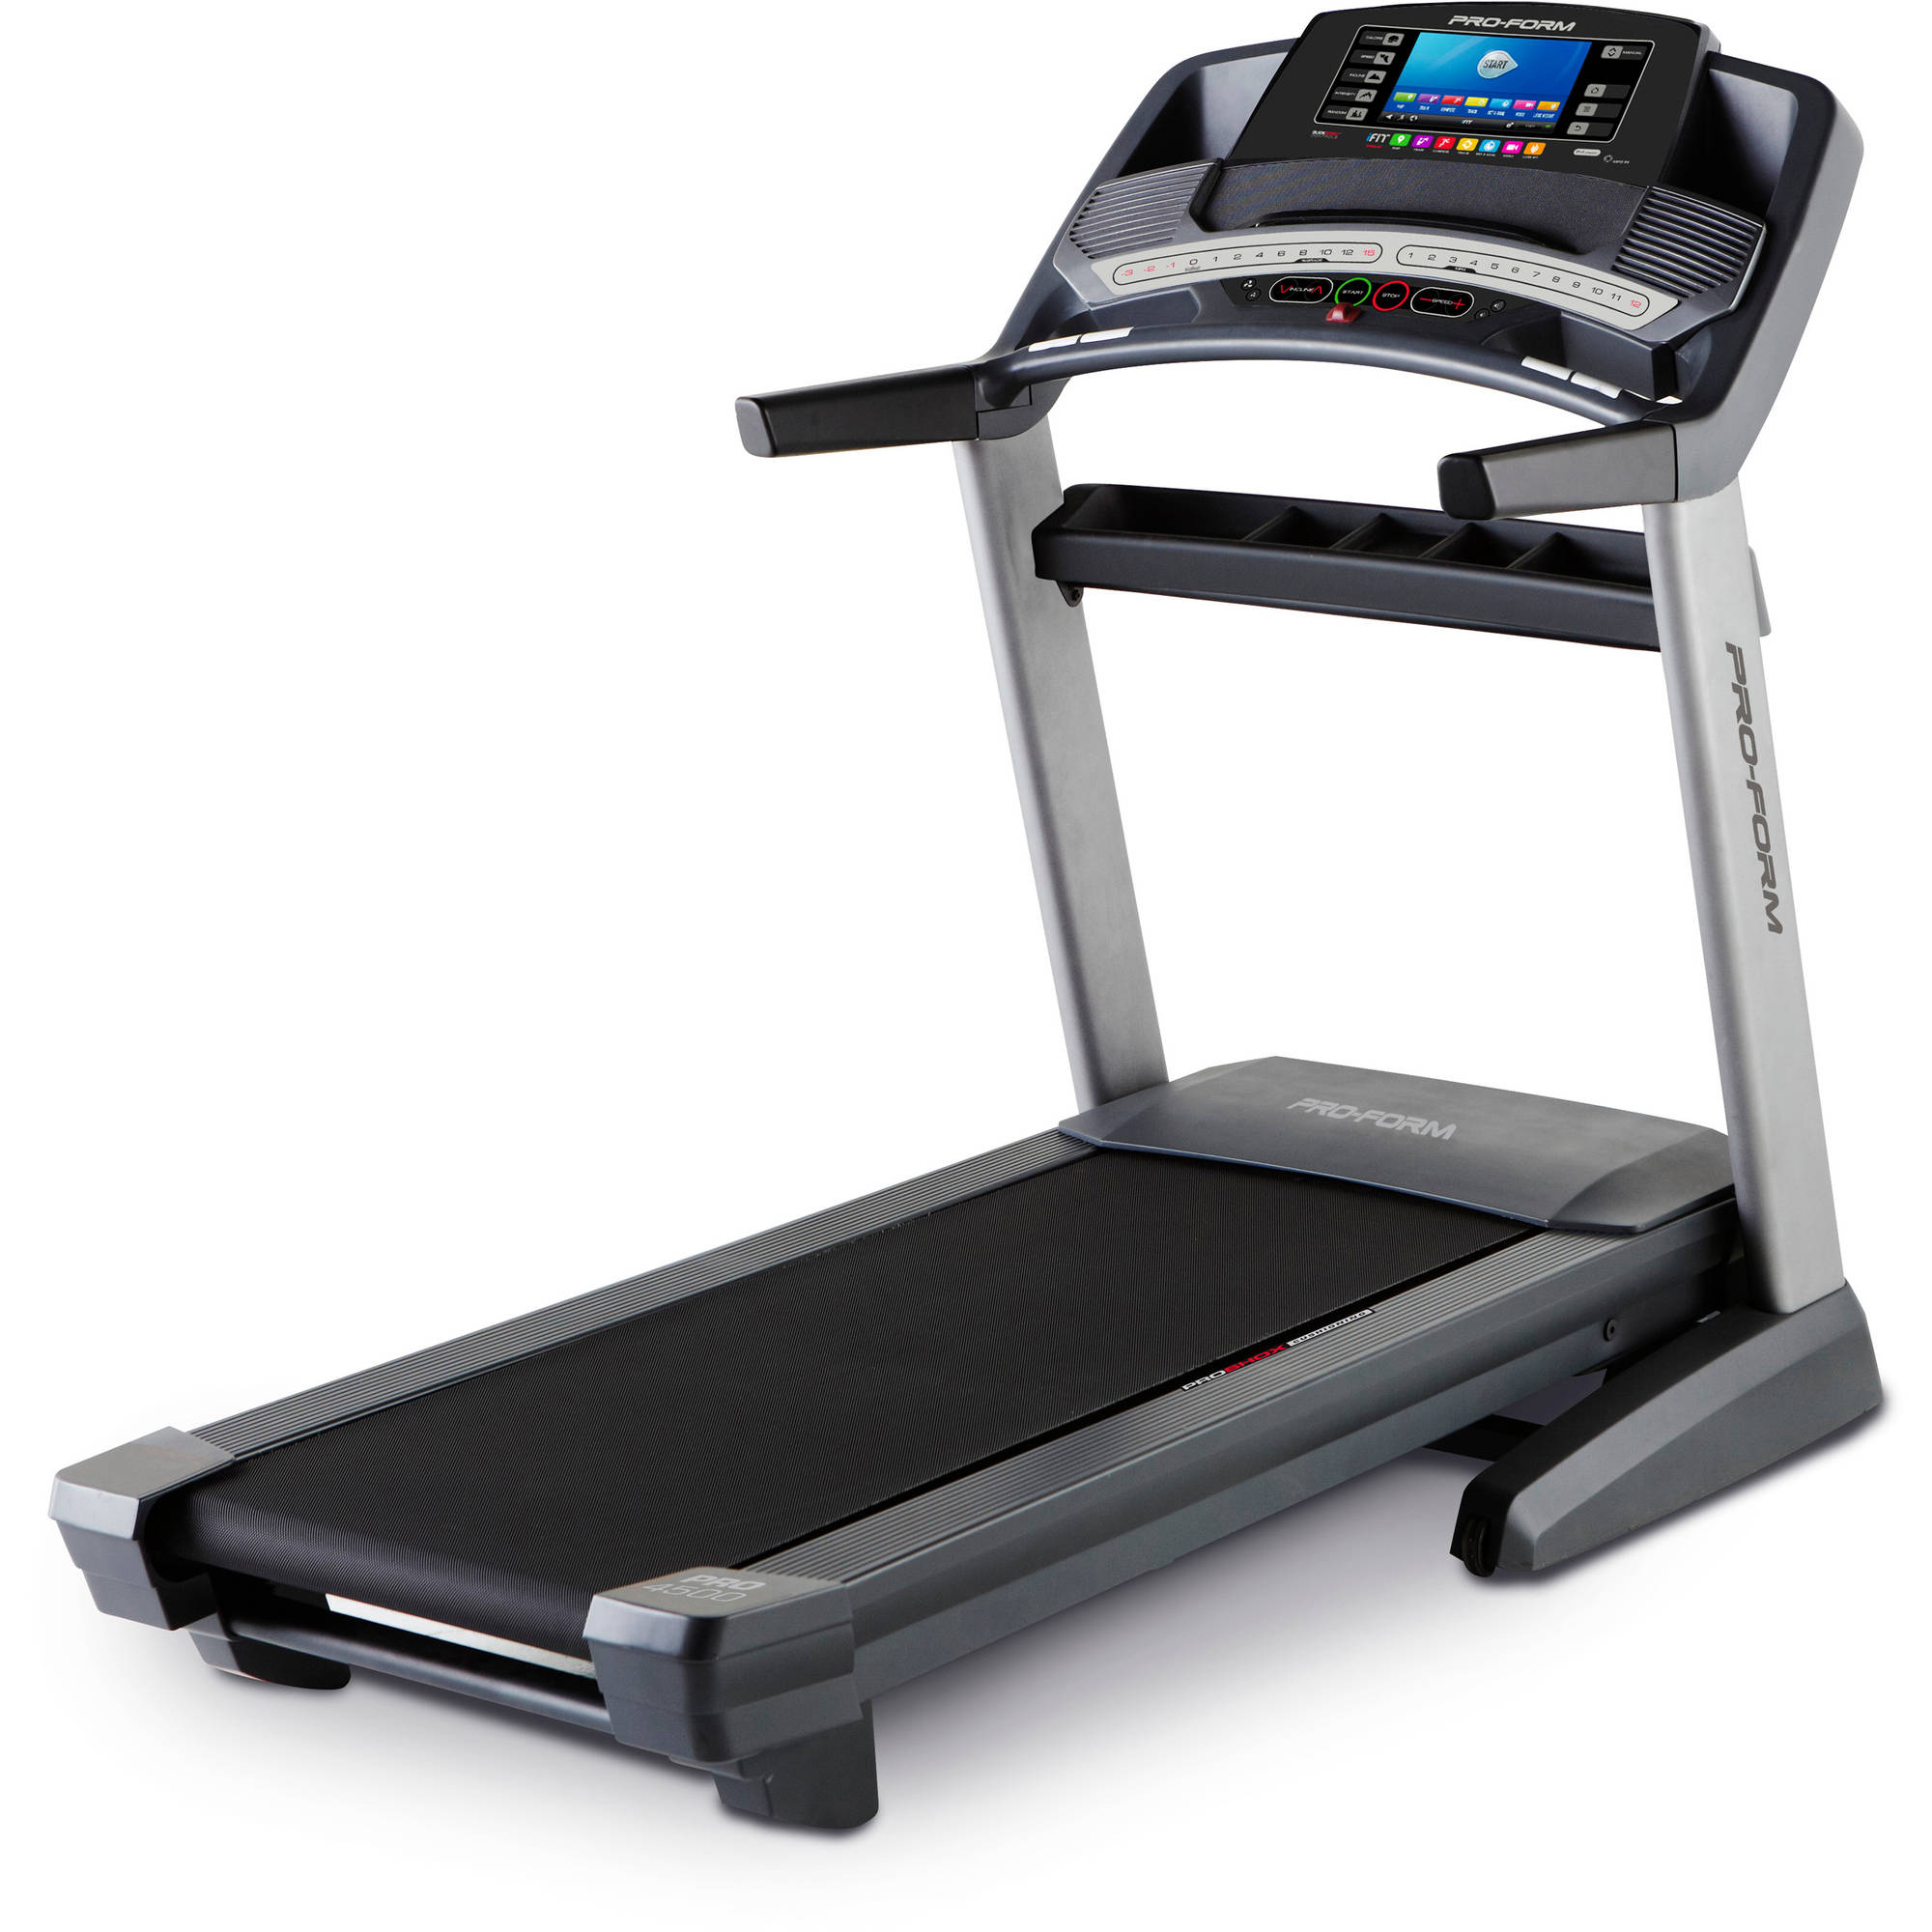 ProForm Pro 4500 Treadmill by Icon Health & Fitness